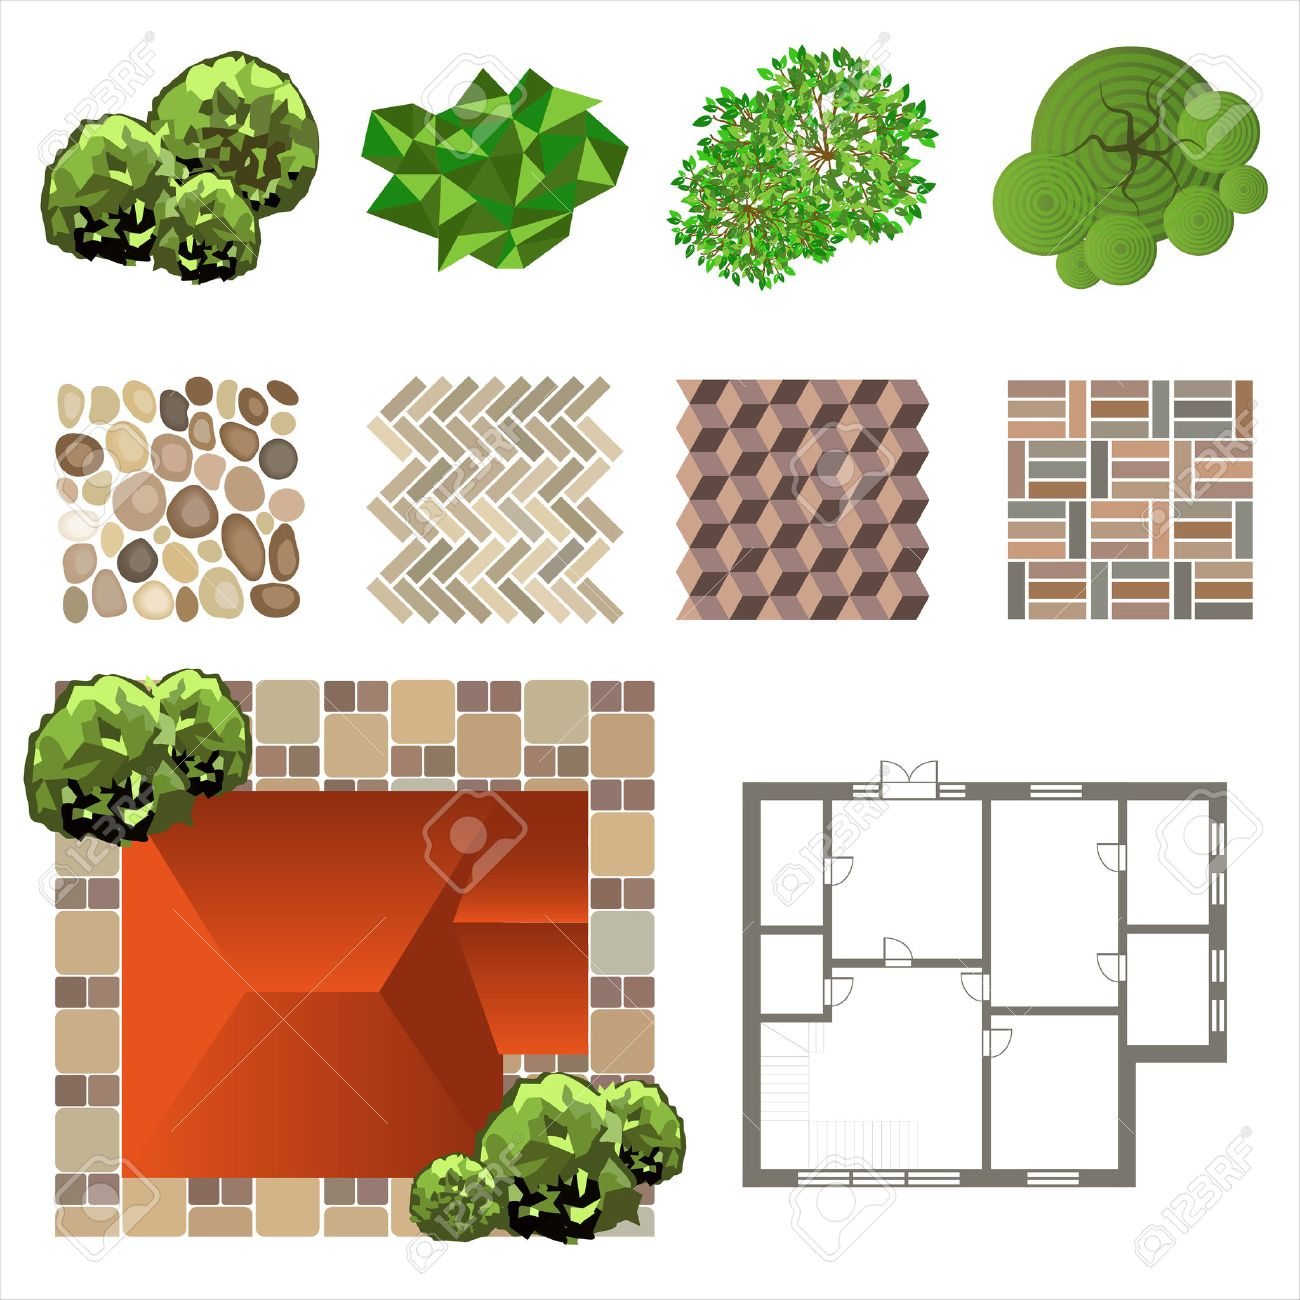 Plant top view vector in group download free vector art stock - Tree Top View Detailed Landscape Design Elements Make Your Own Plan Top View